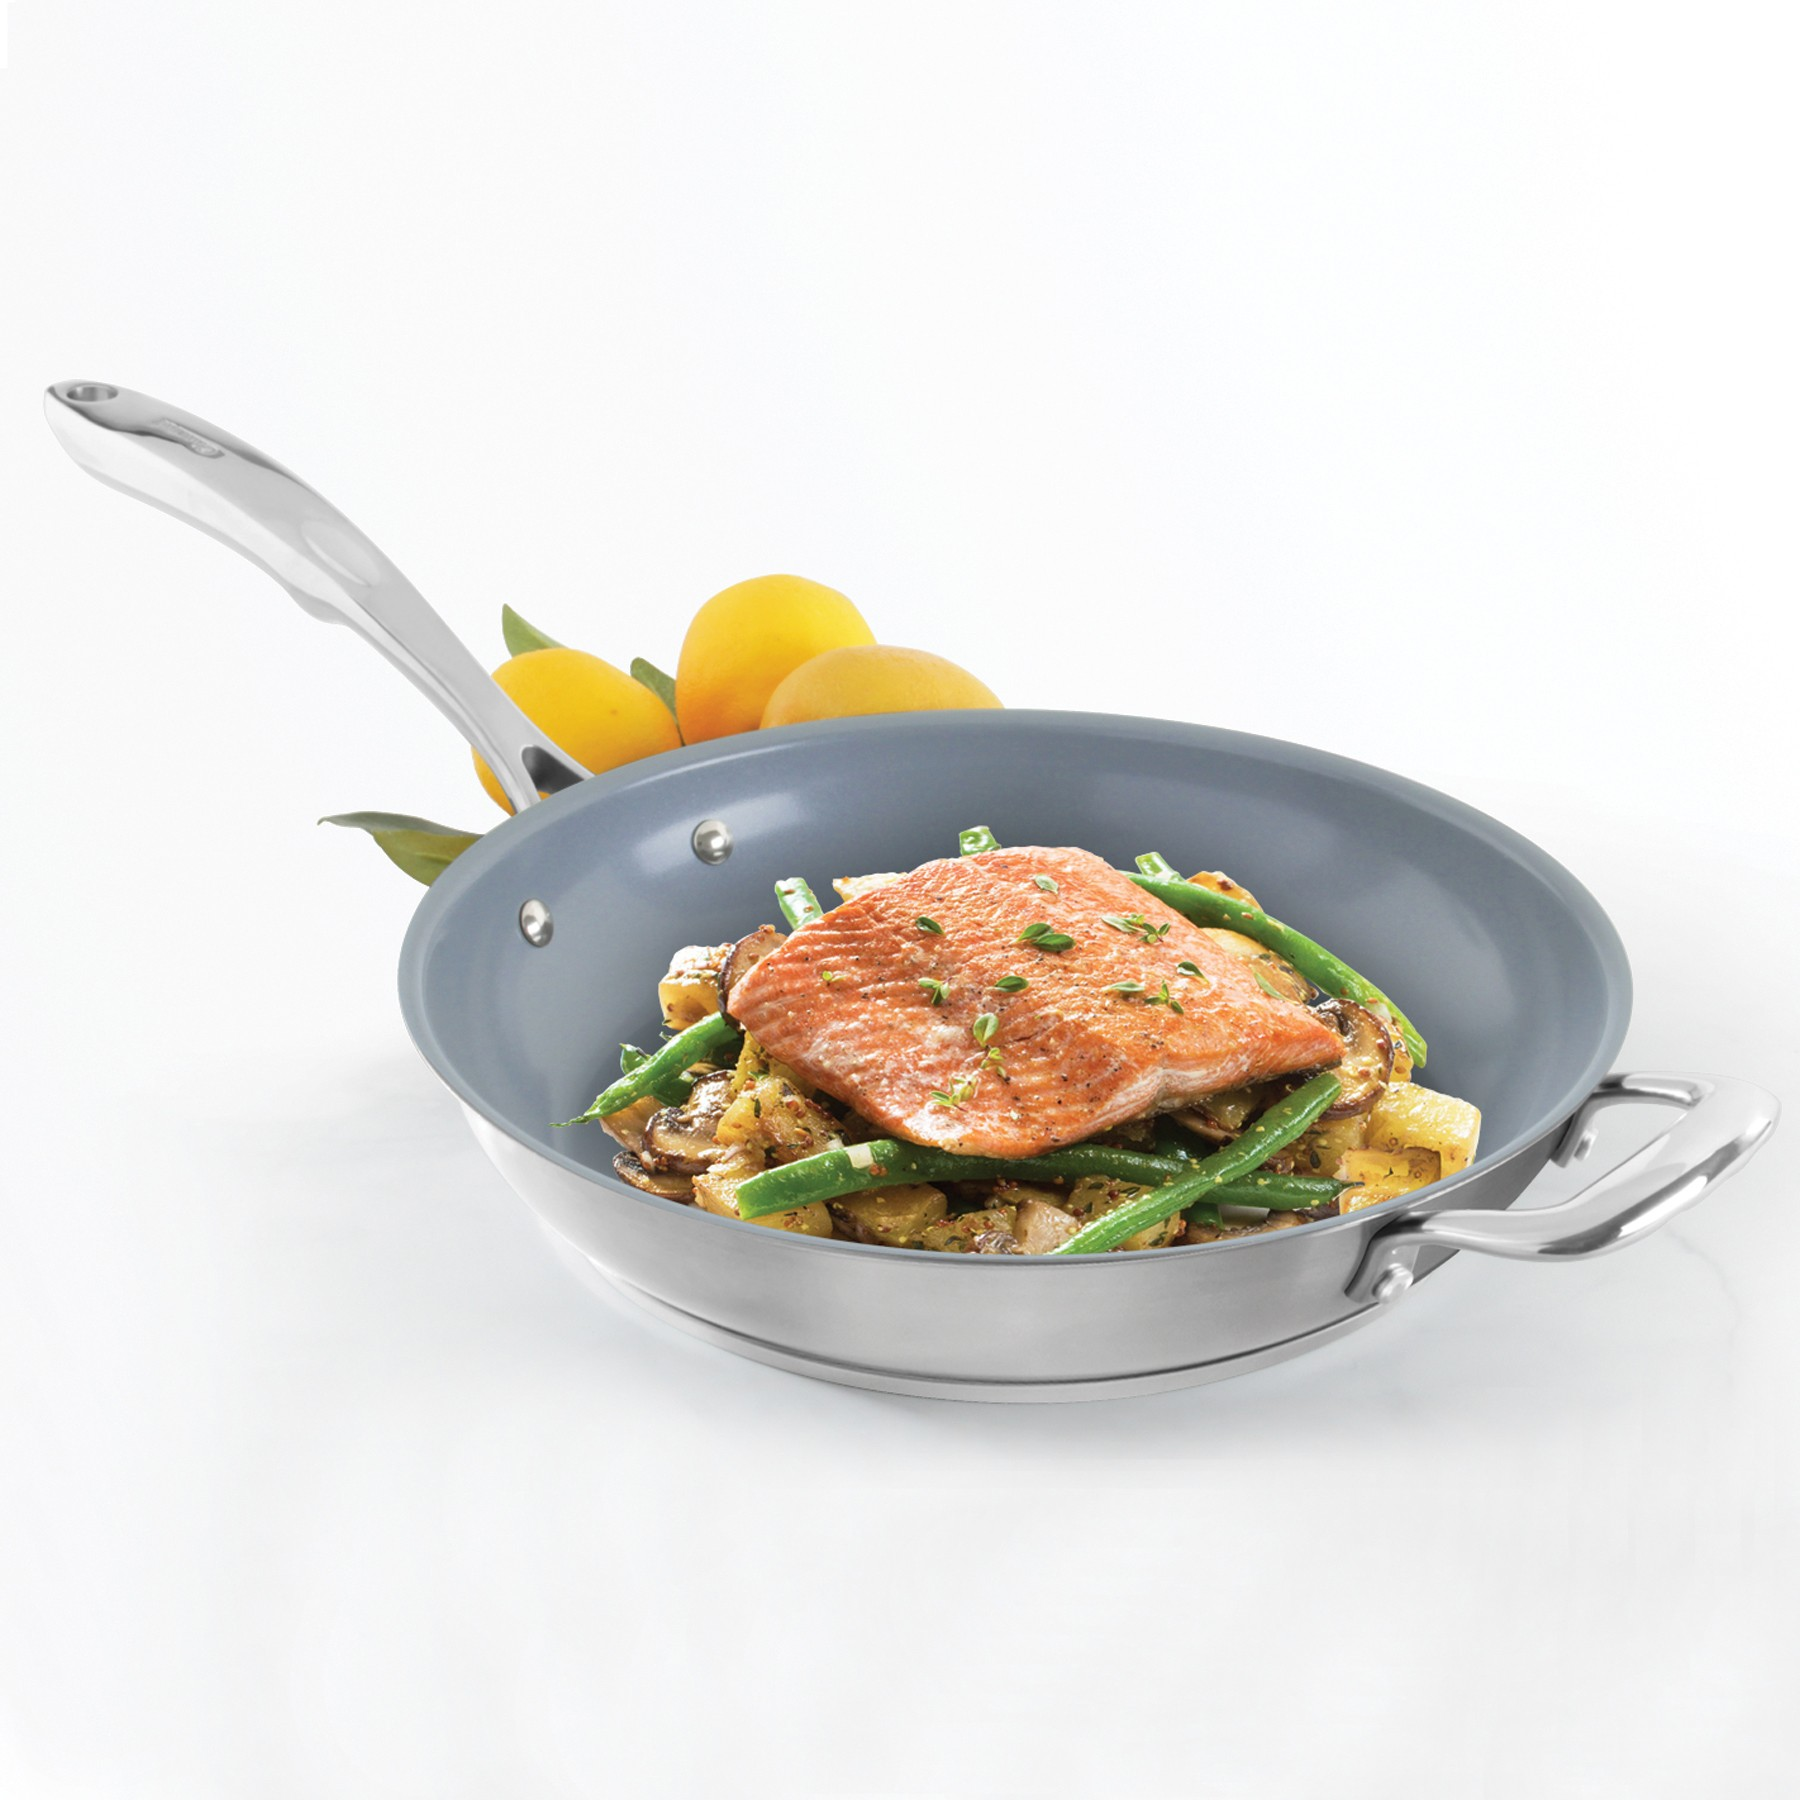 Stainless Steel frypan with ceramic non-stick coating chantal induction 21 steel collection no nickel non-toxic cookware 10 inch diameter in action